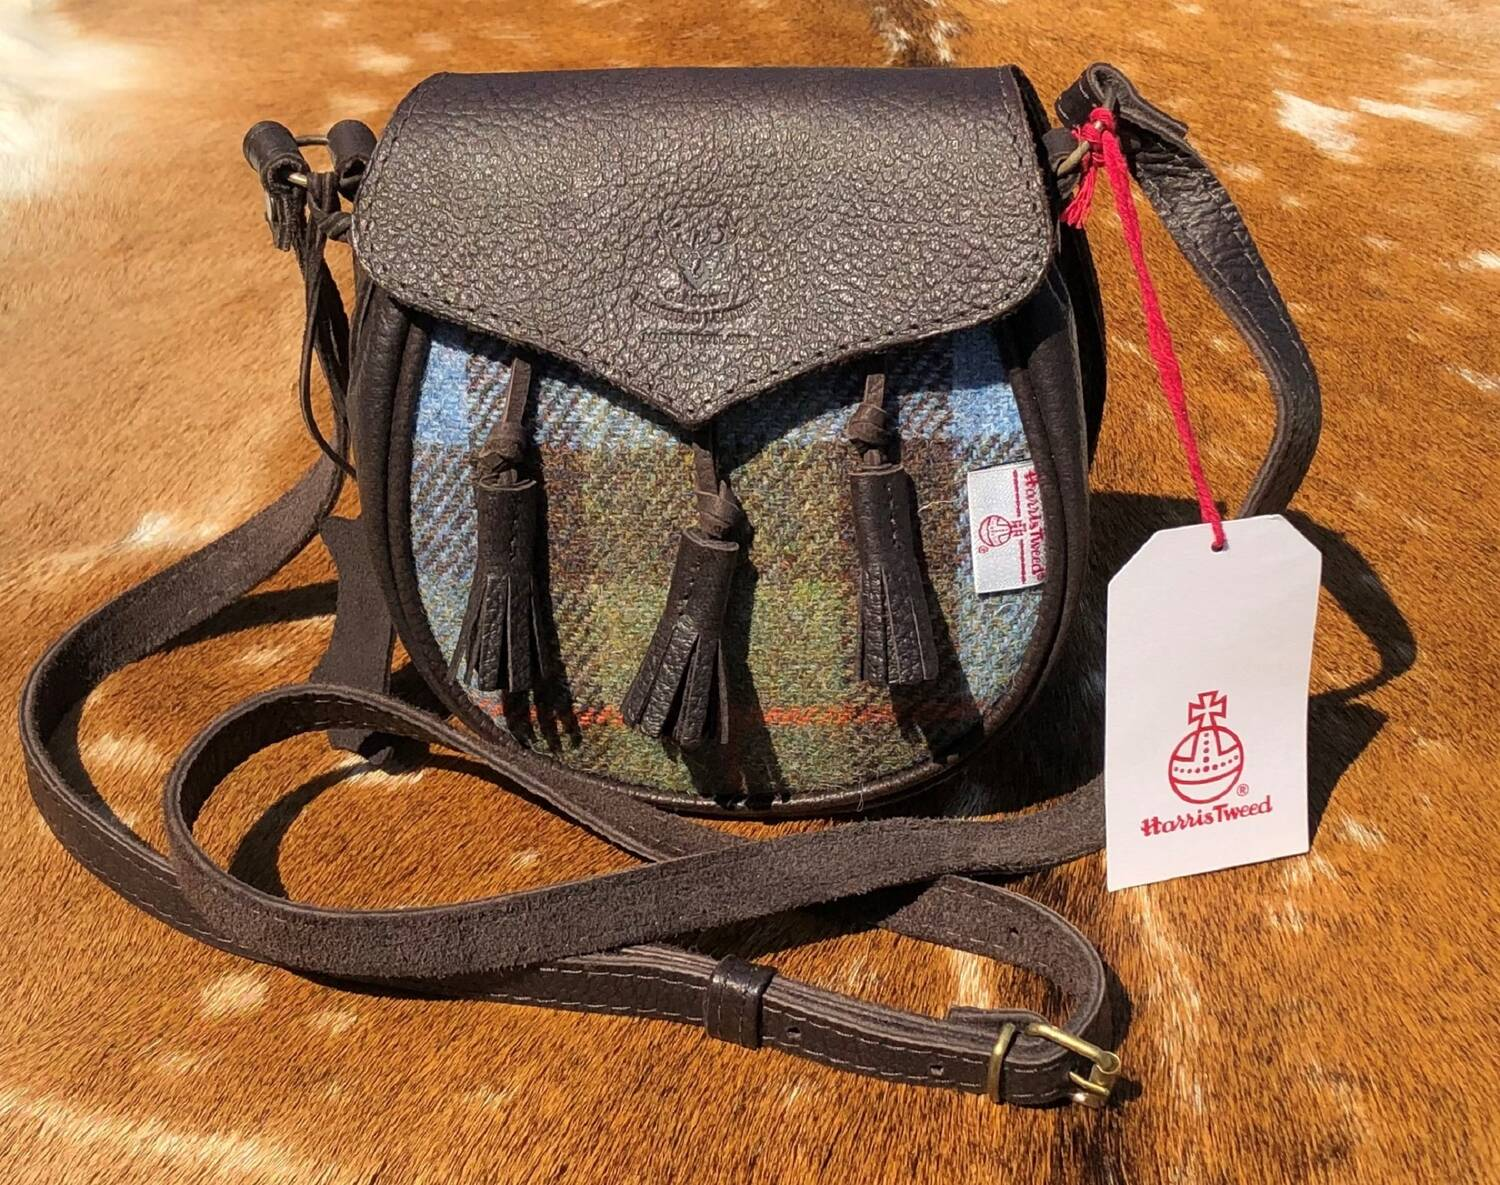 A leather handbag shaped like a sporran, with a tweed middle panel. It has a long thin shoulder strap. It has a label declaring it is made from official Harris tweed.